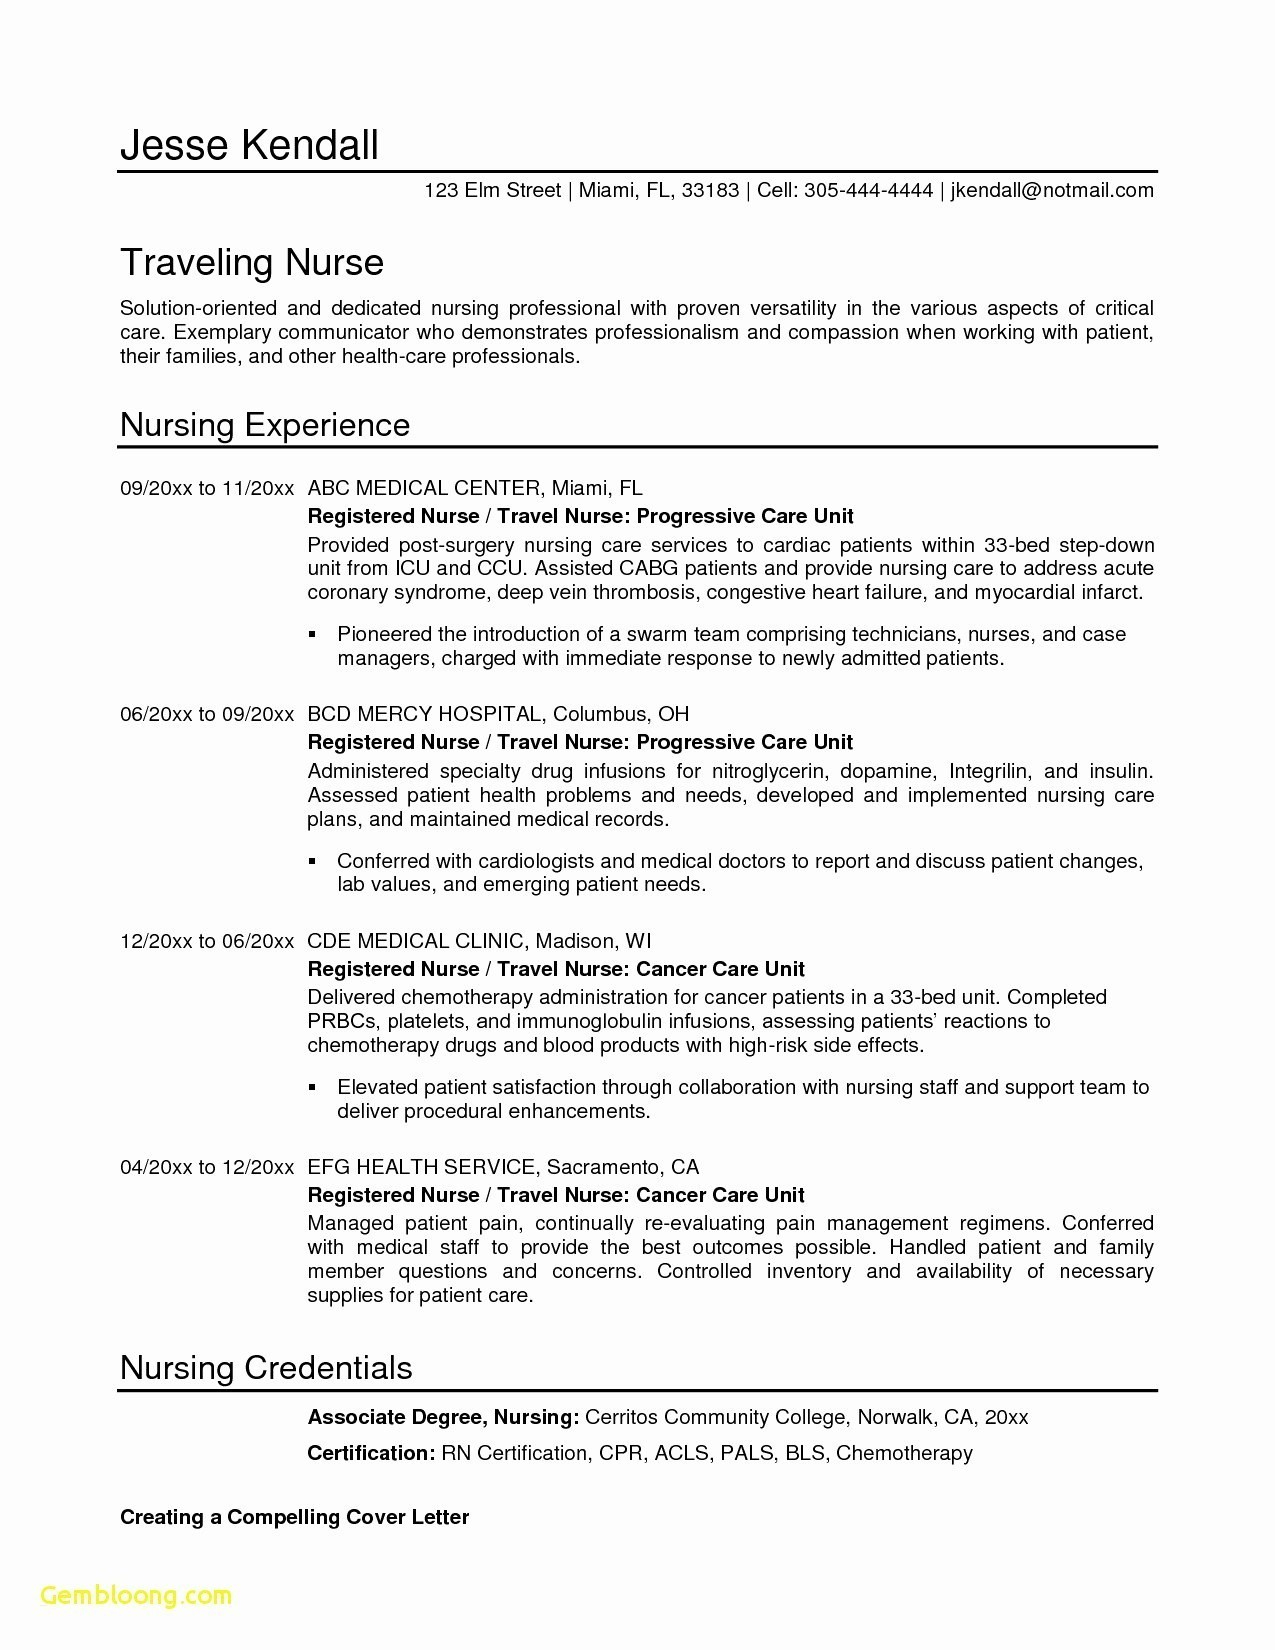 Resume Letter Template - How to organize A Resume Fresh Doctors Letters Templates